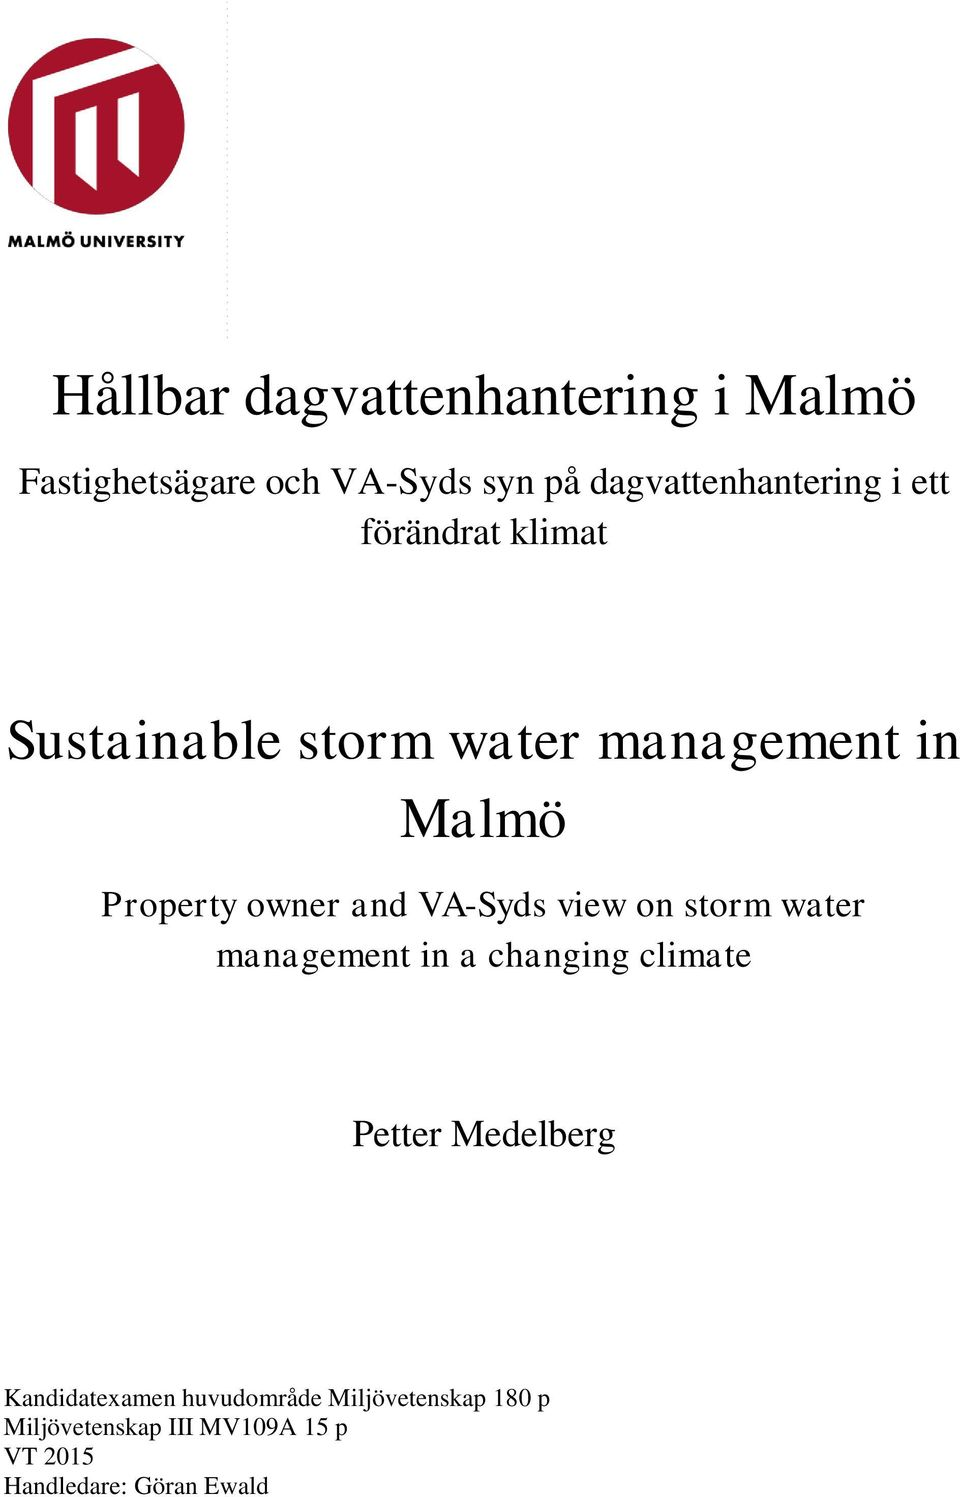 Property owner and VA-Syds view on storm water management in a changing climate